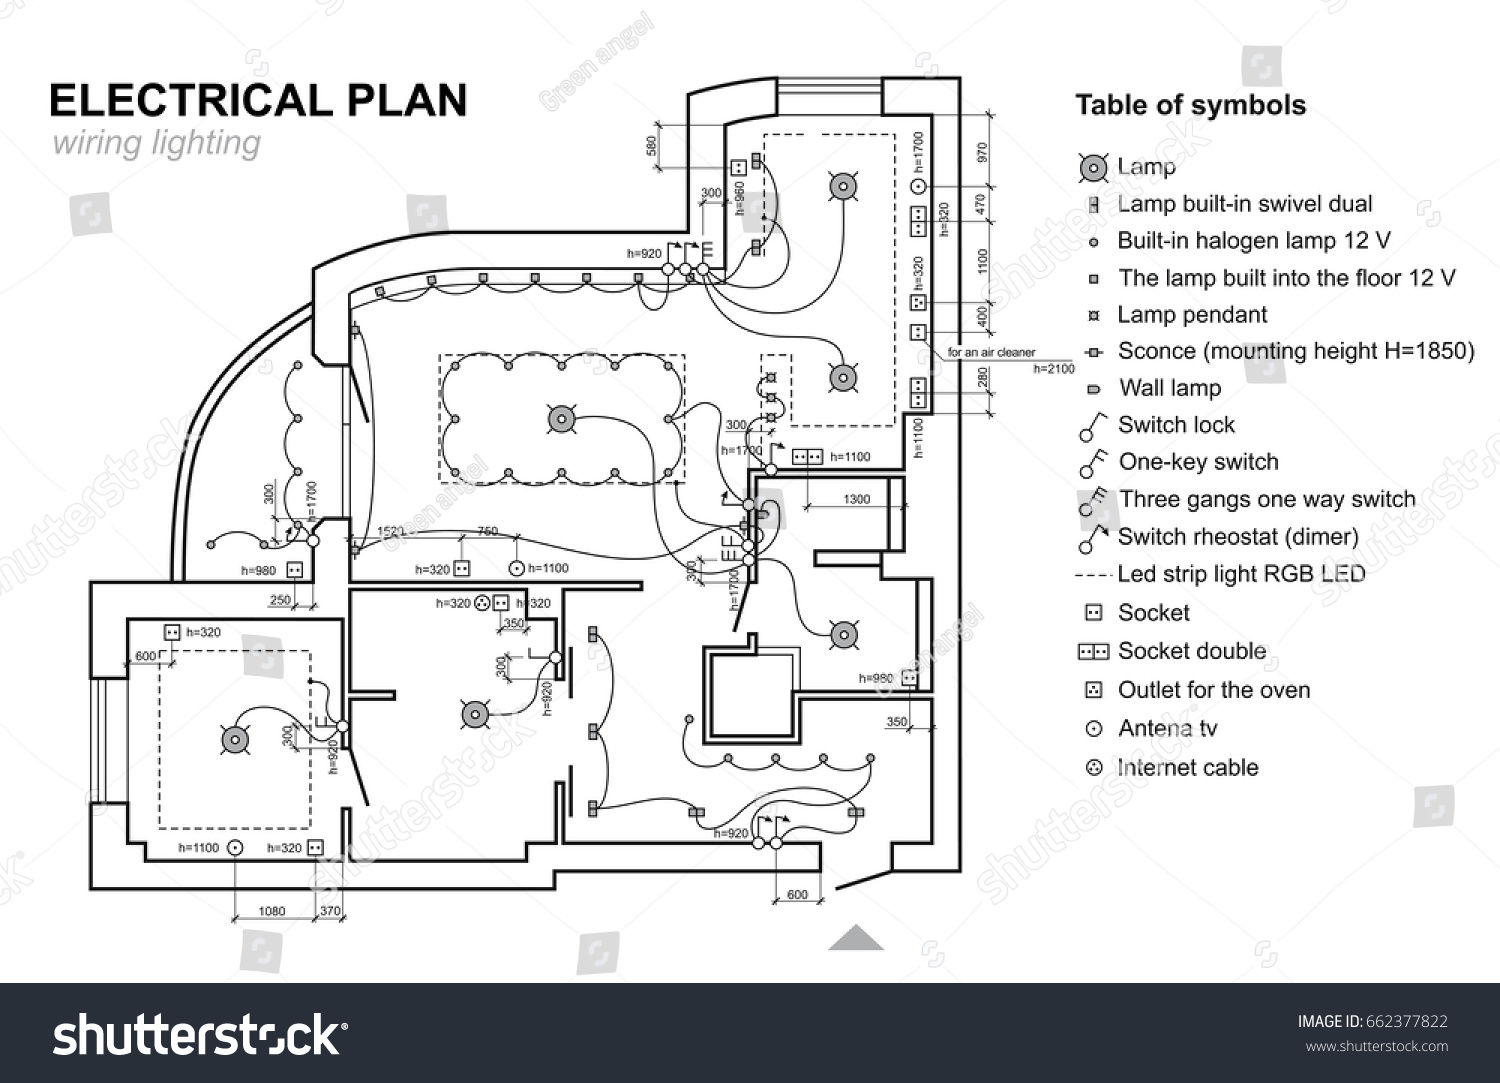 stock vector plan wiring lighting electrical schematic interior set of standard icons switches electrical 662377822 plan wiring lighting electrical schematic interior stock vector wiring schematic icons at eliteediting.co